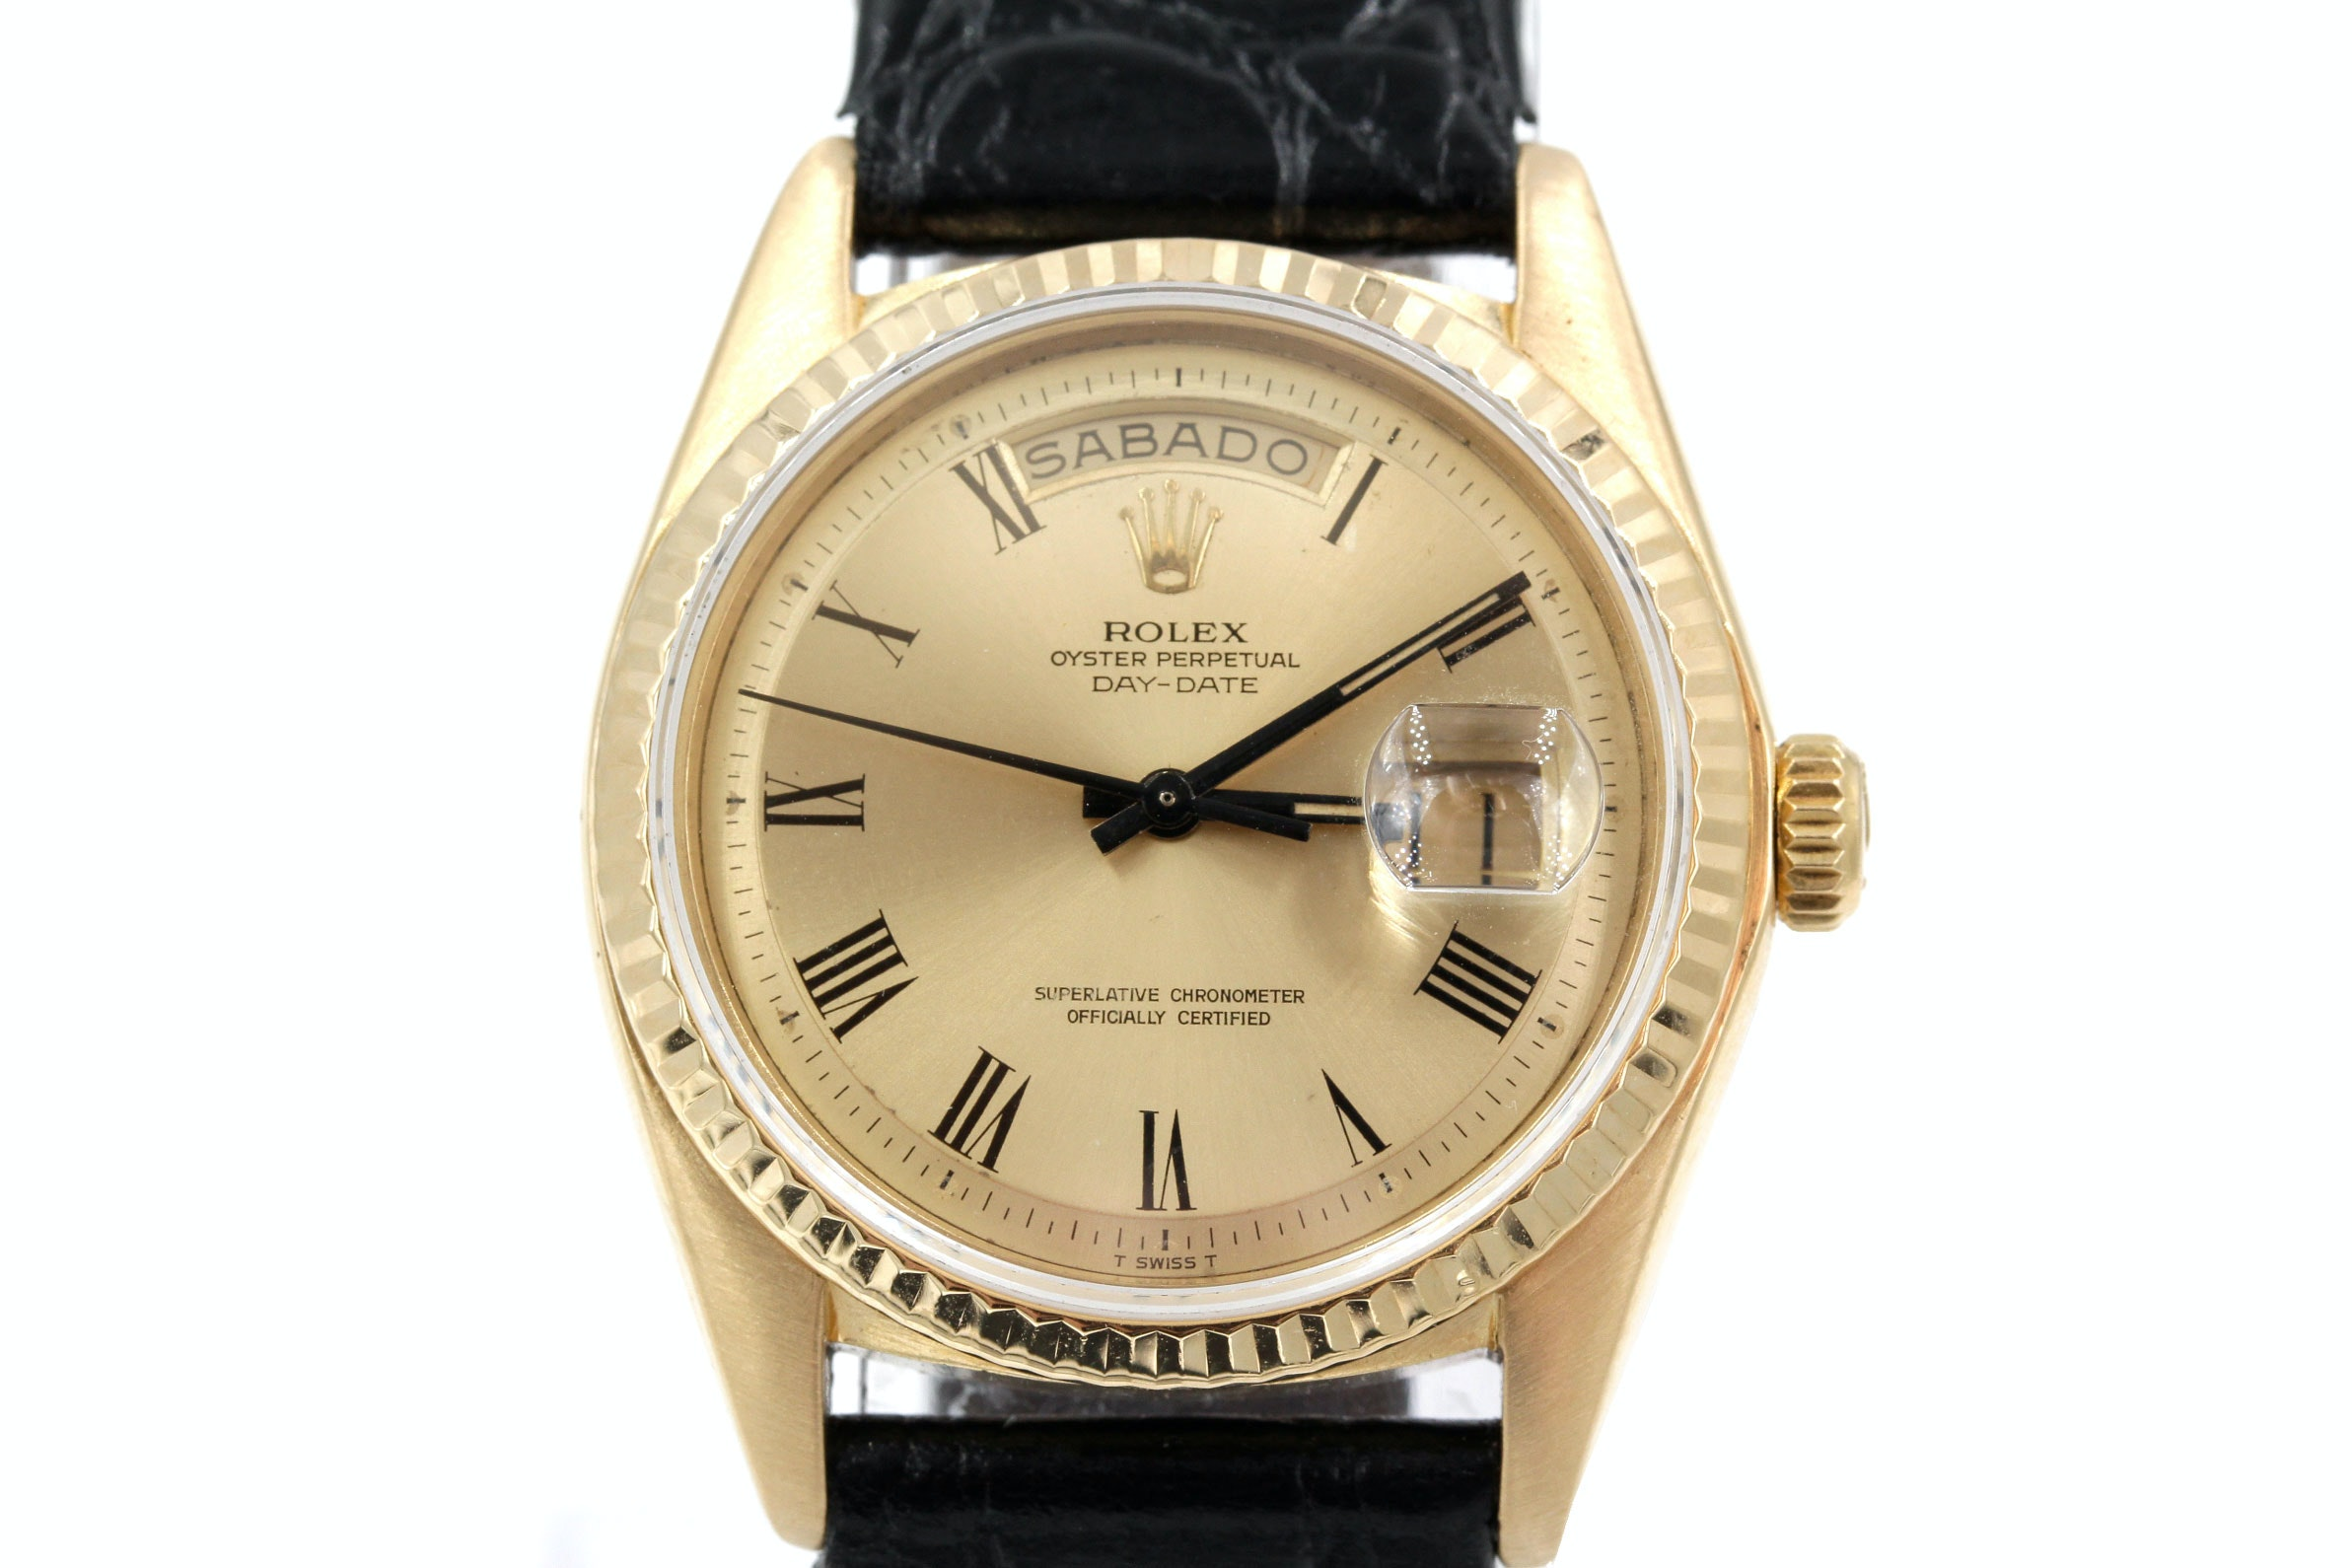 Rolex Wristwatch in 18K Yellow Gold